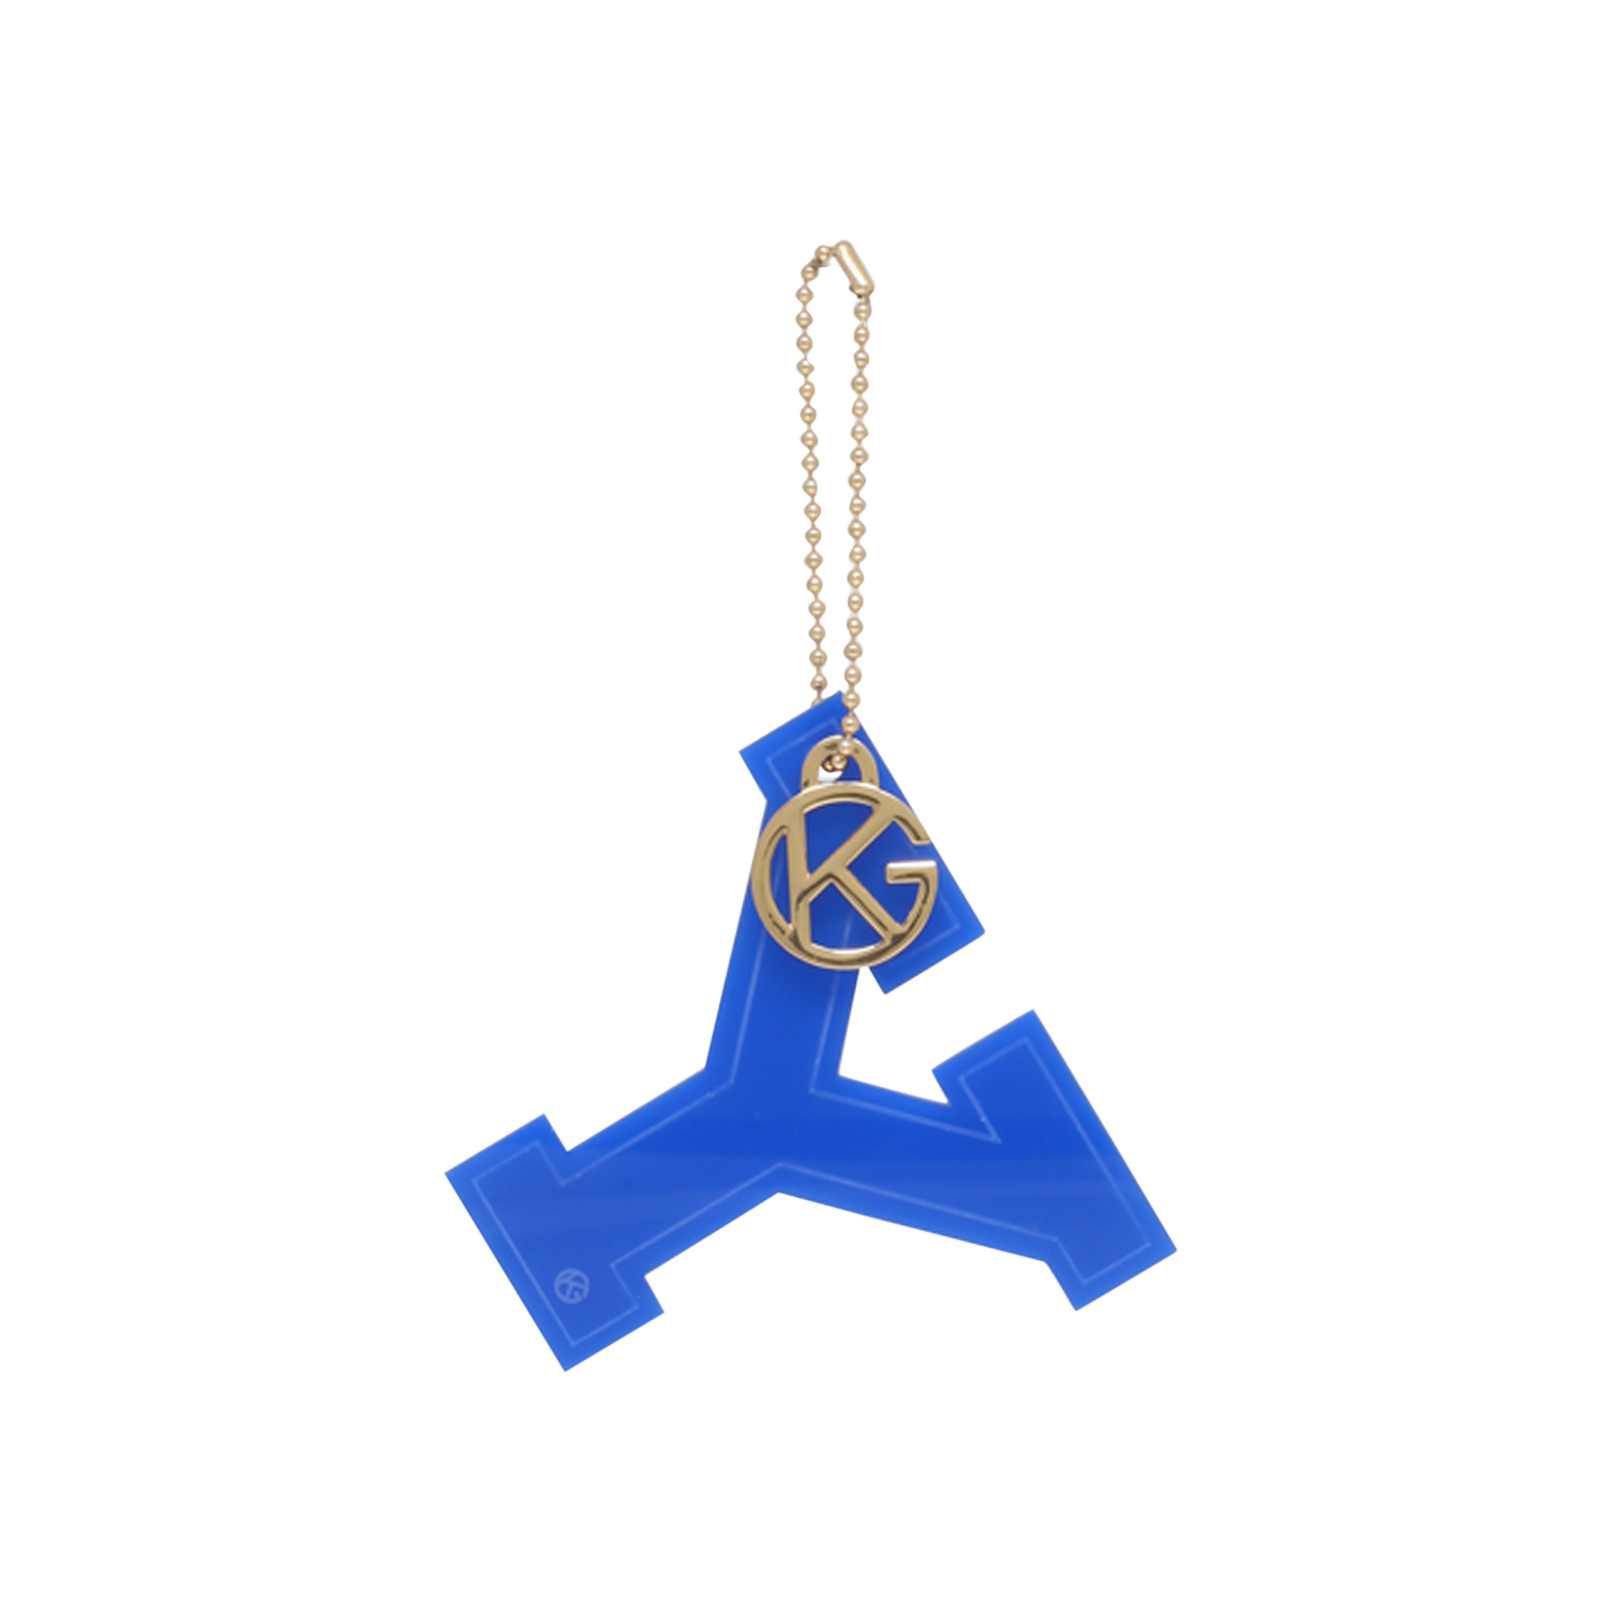 LETTER Y CHARM